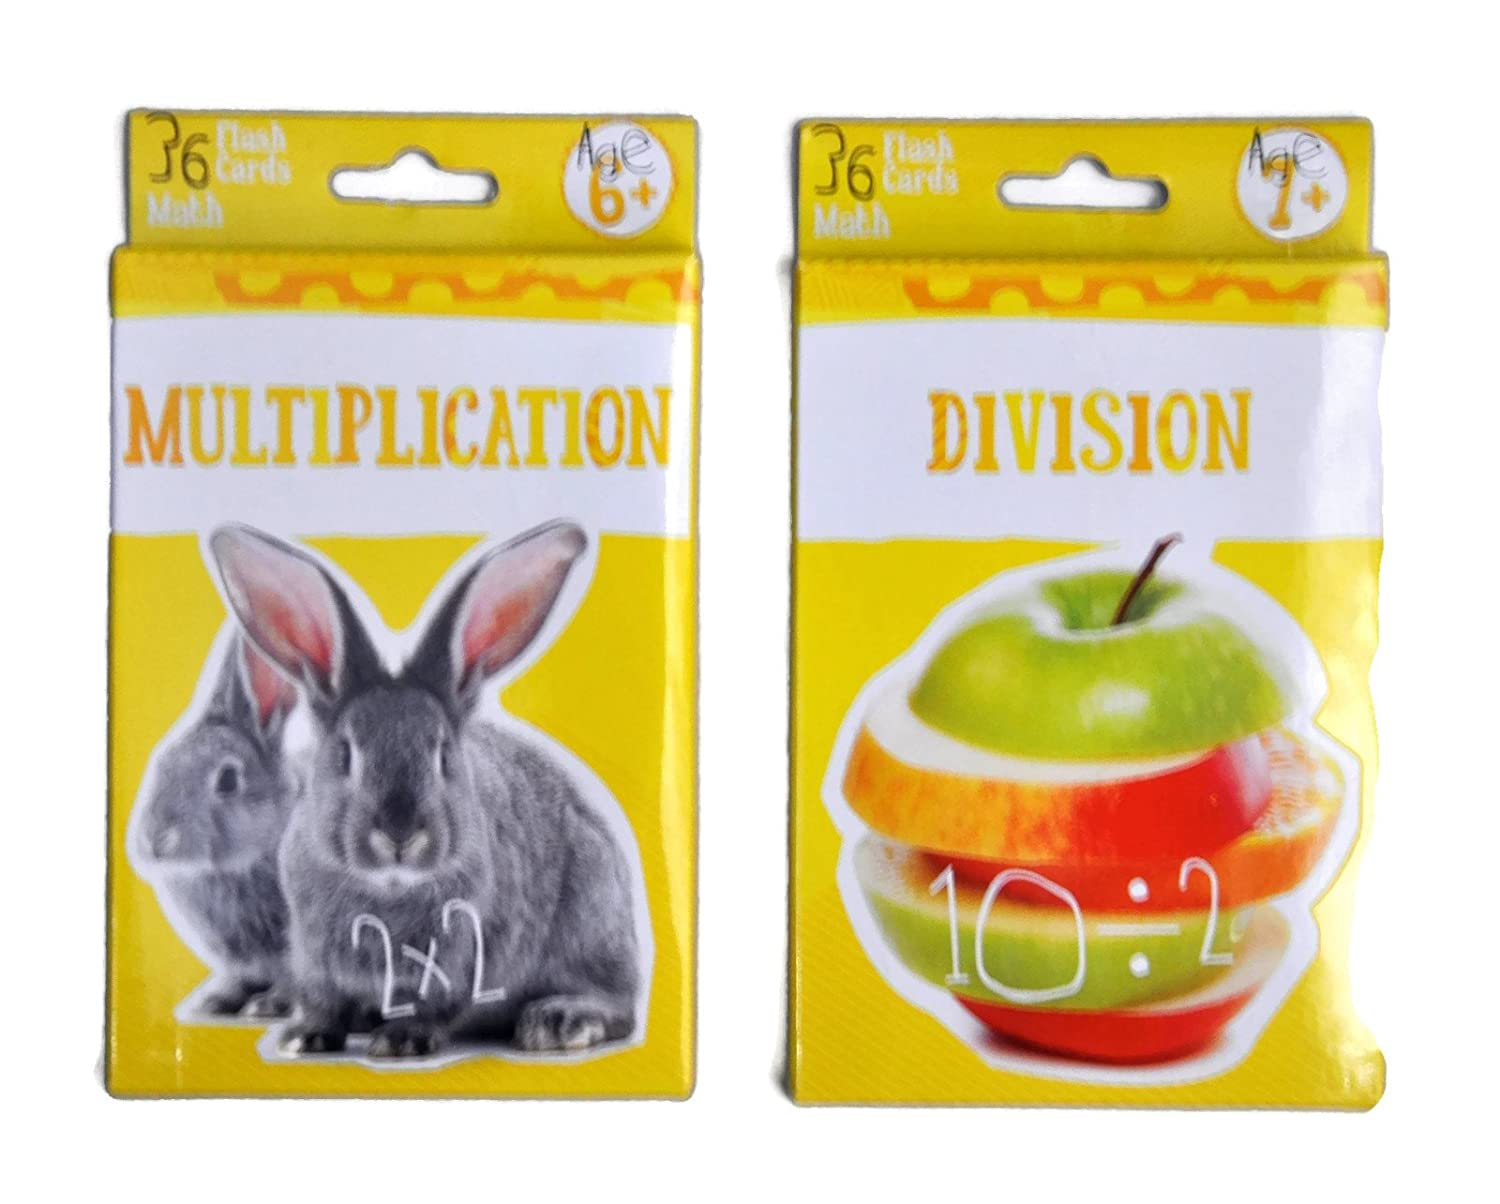 Multiplication & Division Flashcards - Math for 3rd Grade 4th Grade - Learning Practise Flash Card Bundle   B074DP54YS